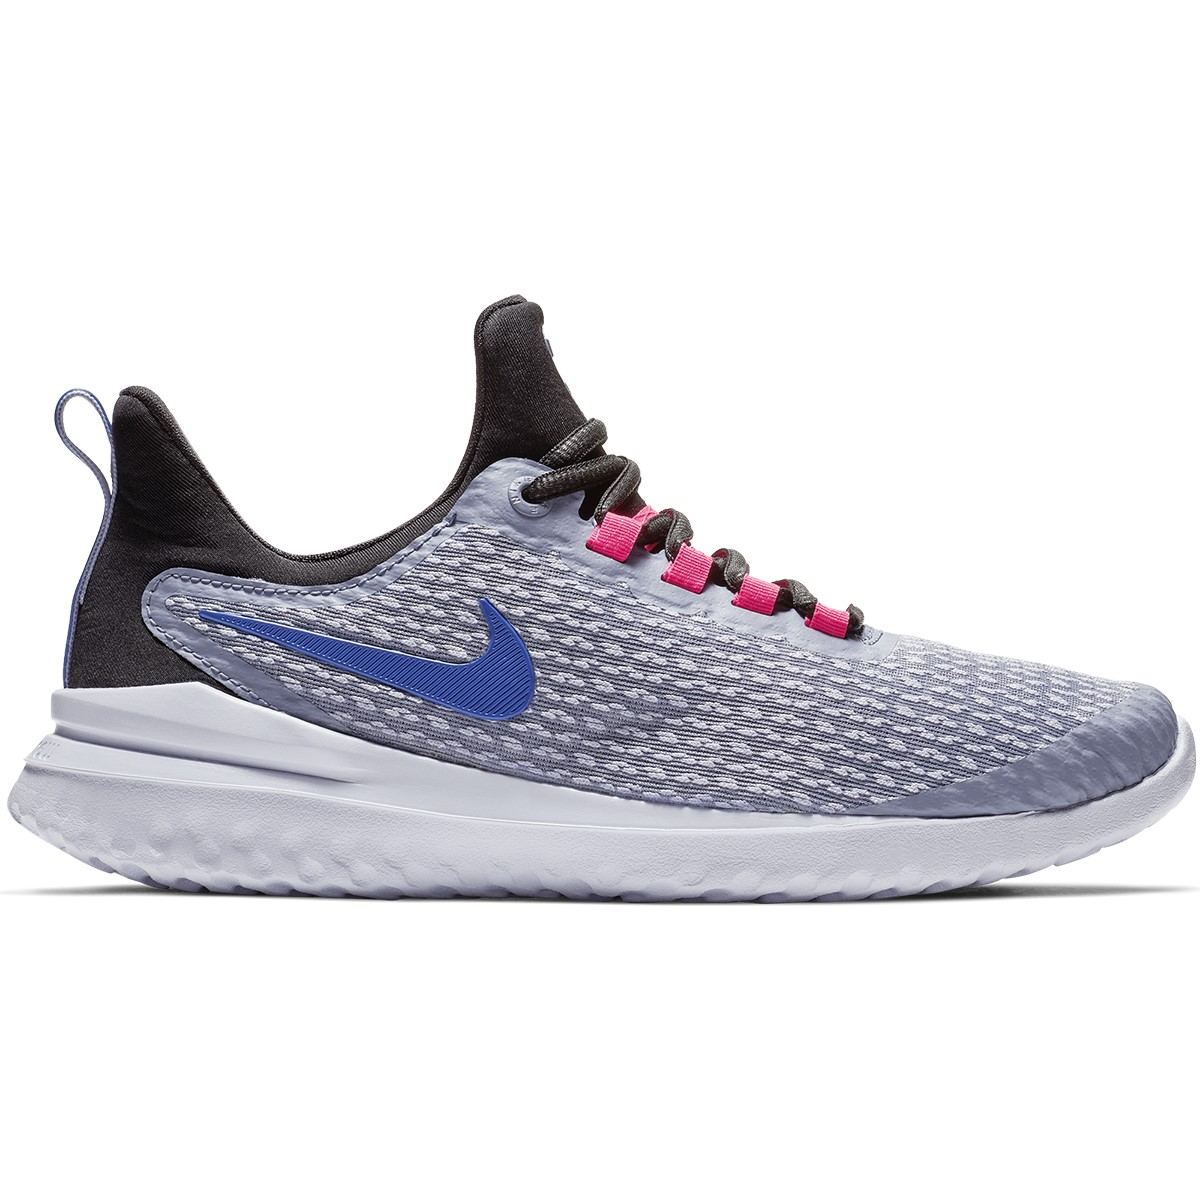 db8d4049a Nike Renew Rival - Womens Running Shoes - Iron Purple/Sapphire/Black ...